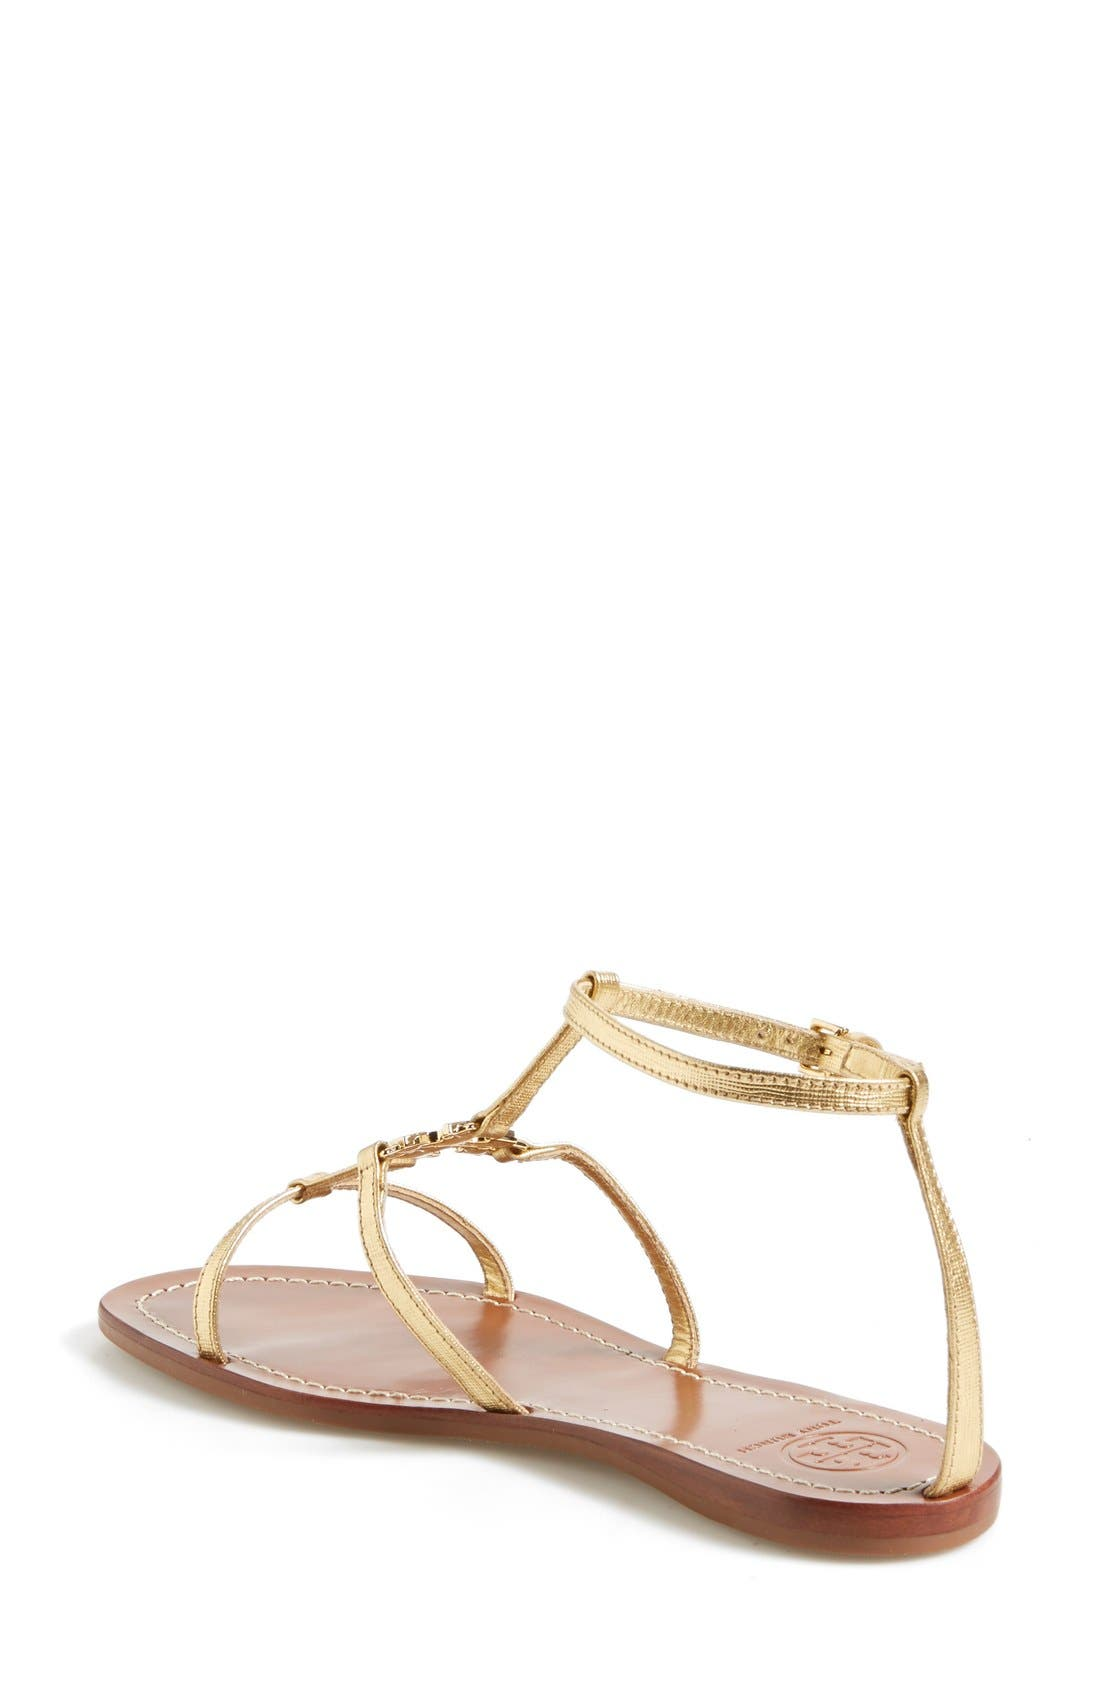 Alternate Image 2  - Tory Burch 'Lowell' Leather Sandal (Women)